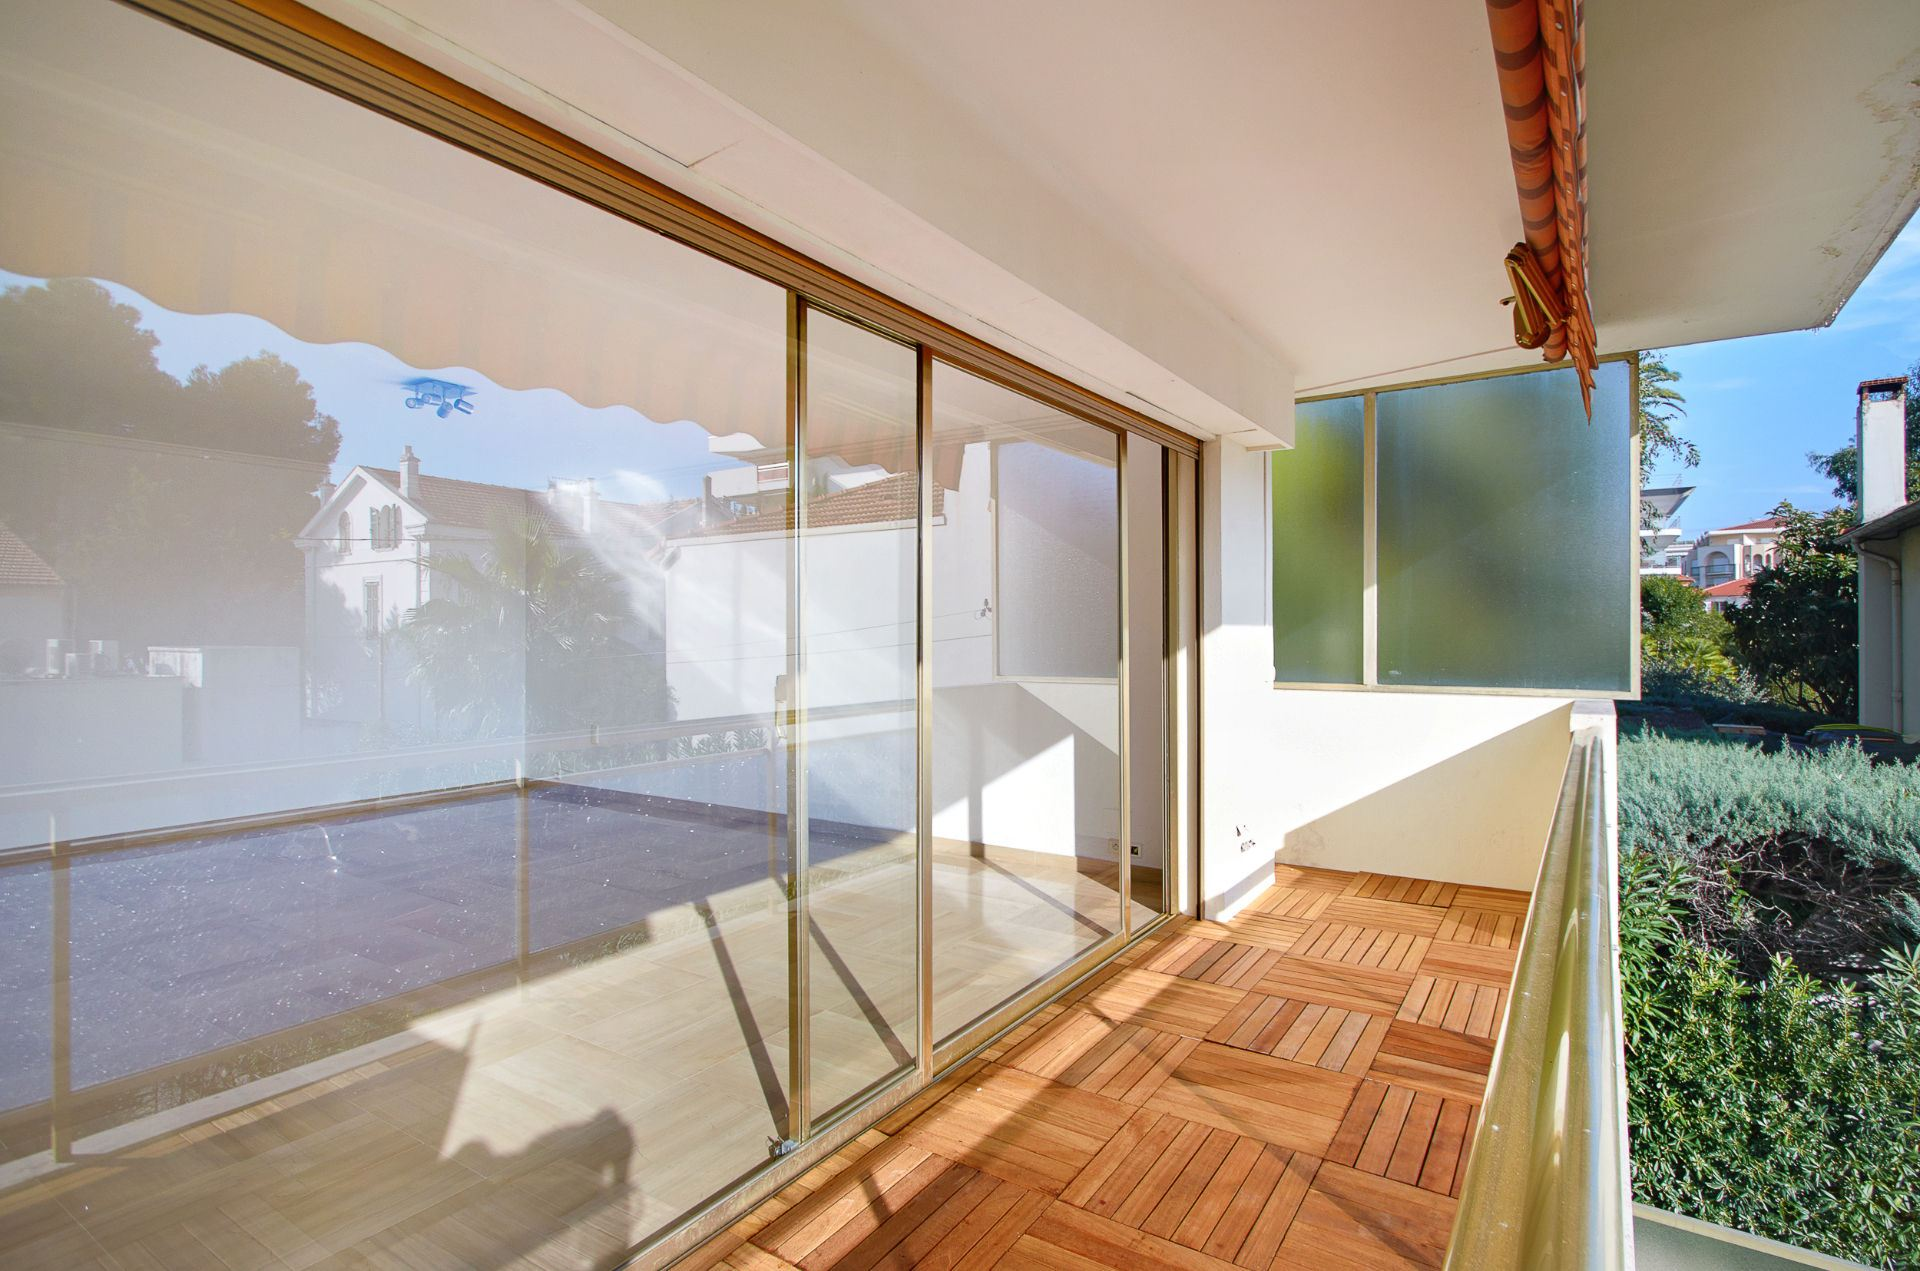 Apartamento para Venda às 2 bedroomed apartment - Cannes Palm Beach Cannes, Provença-Alpes-Costa Azul, 06400 França